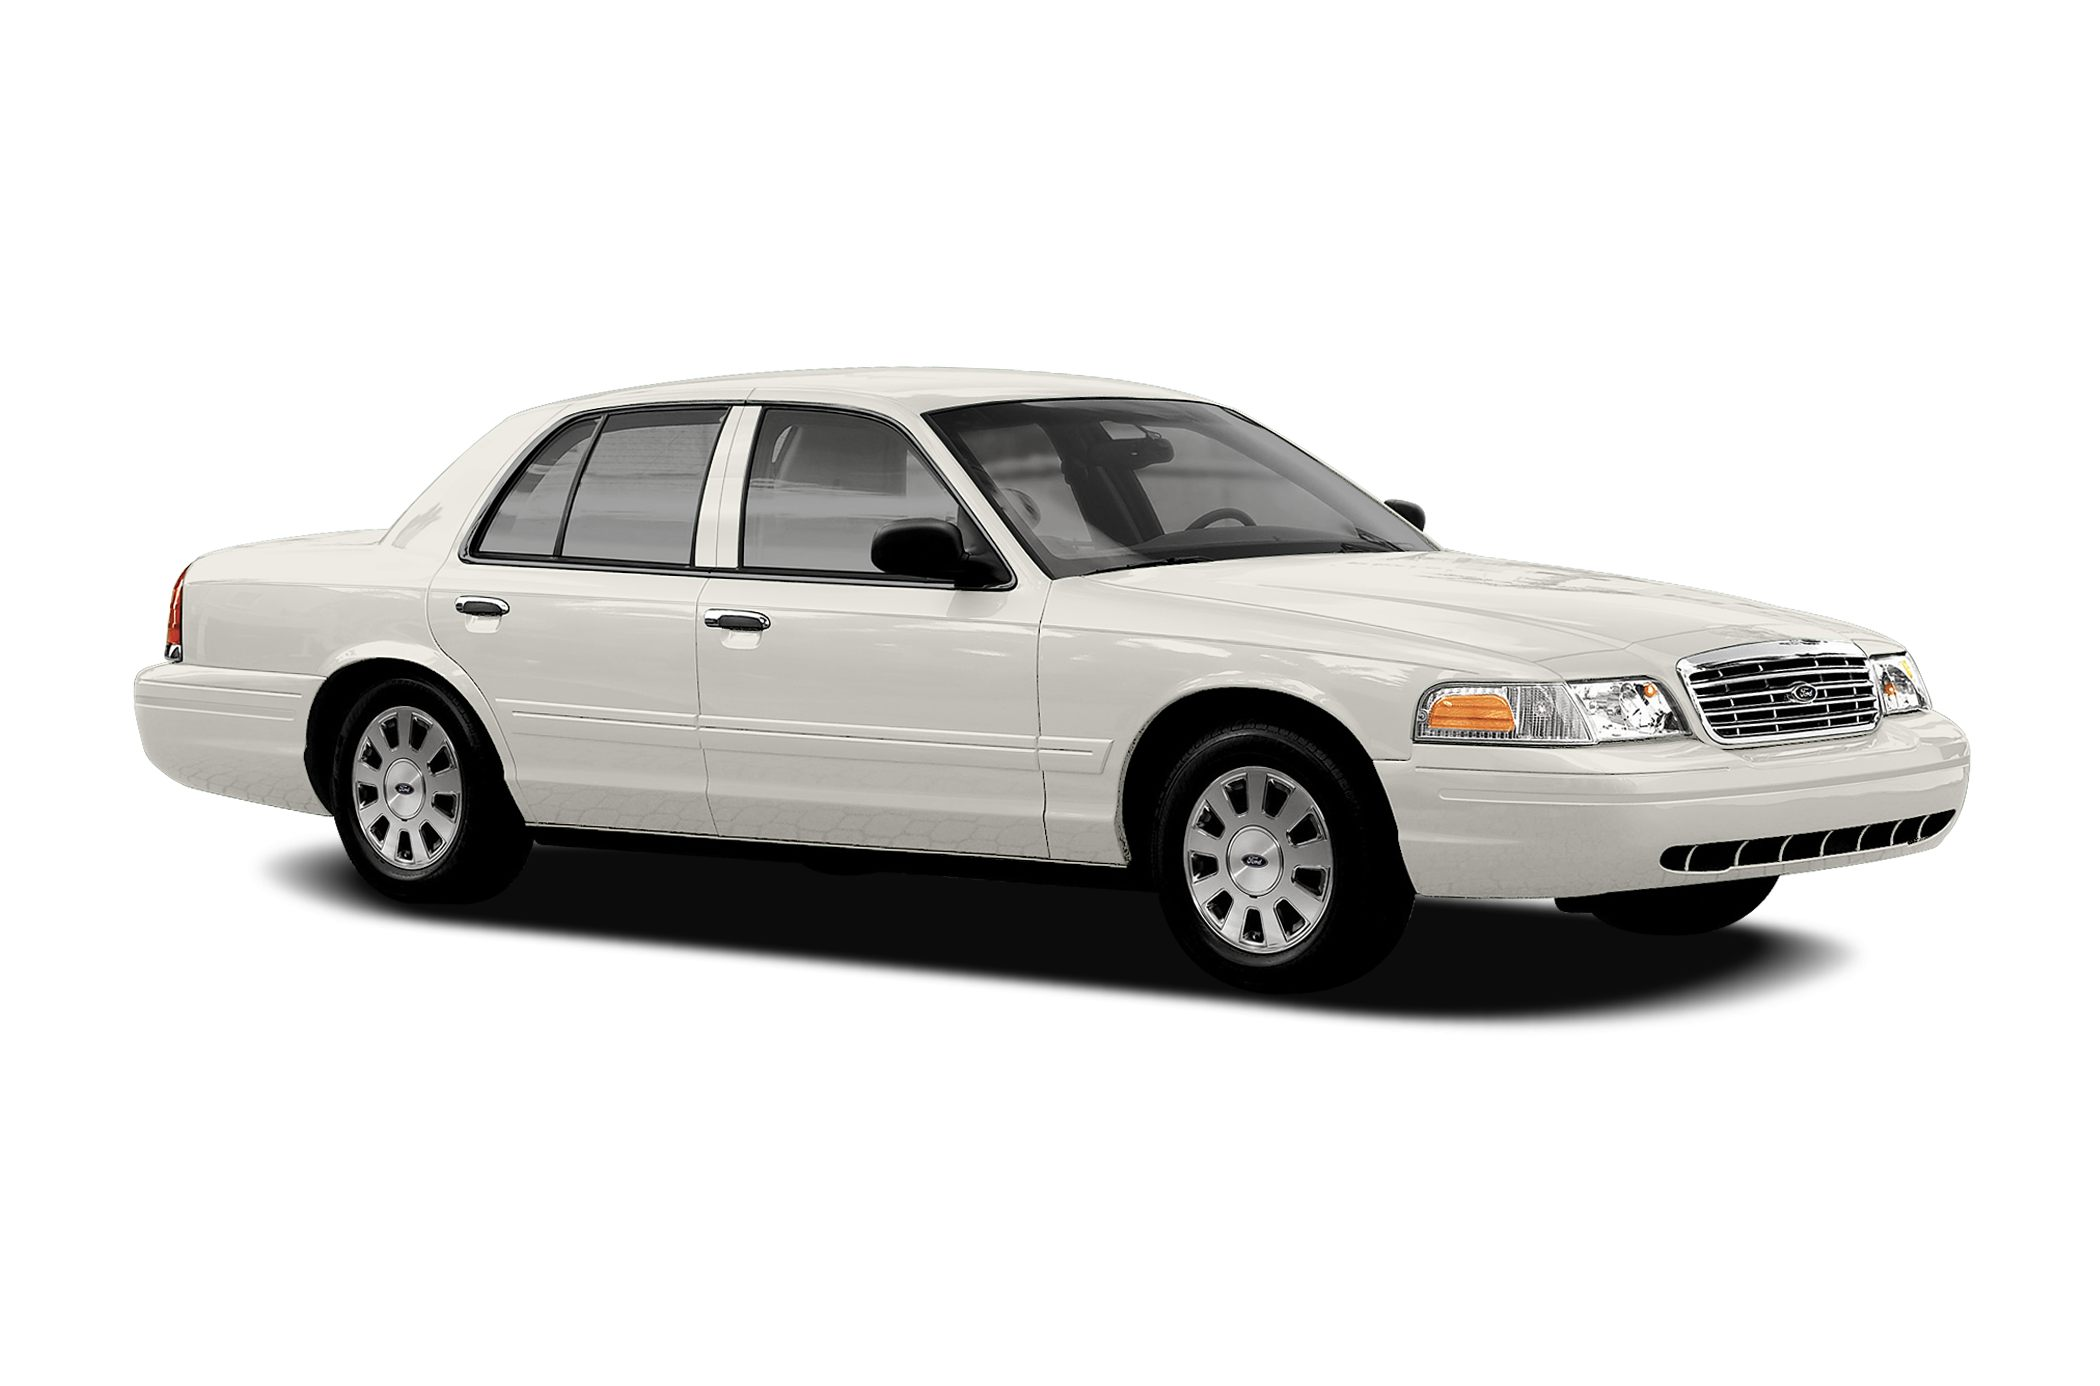 ford crown victoria news photos and buying information. Black Bedroom Furniture Sets. Home Design Ideas